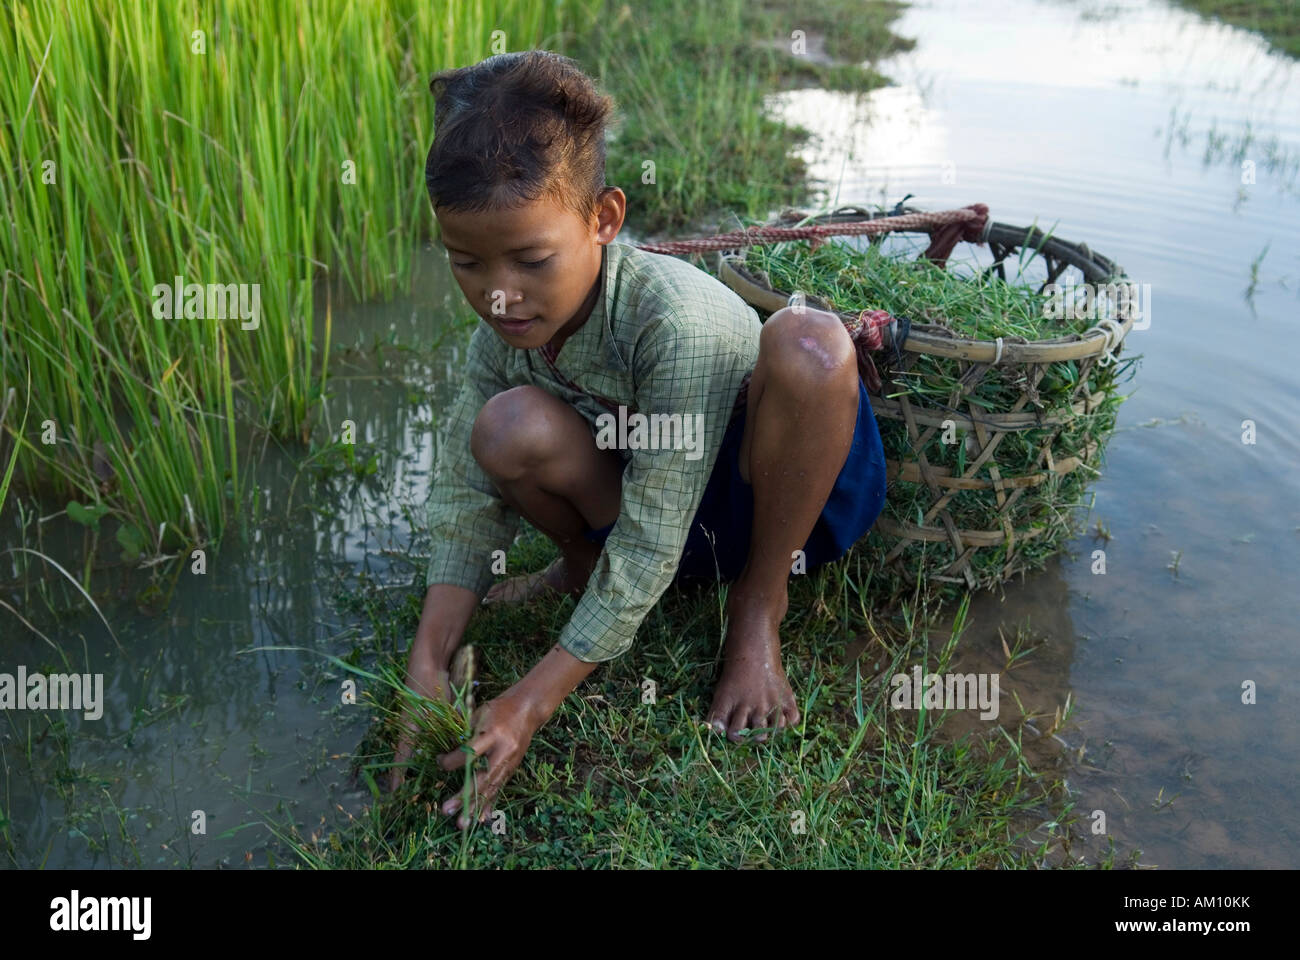 Boy collecting animal fodder in flooded rice fields, Takeo Province, Cambodia - Stock Image